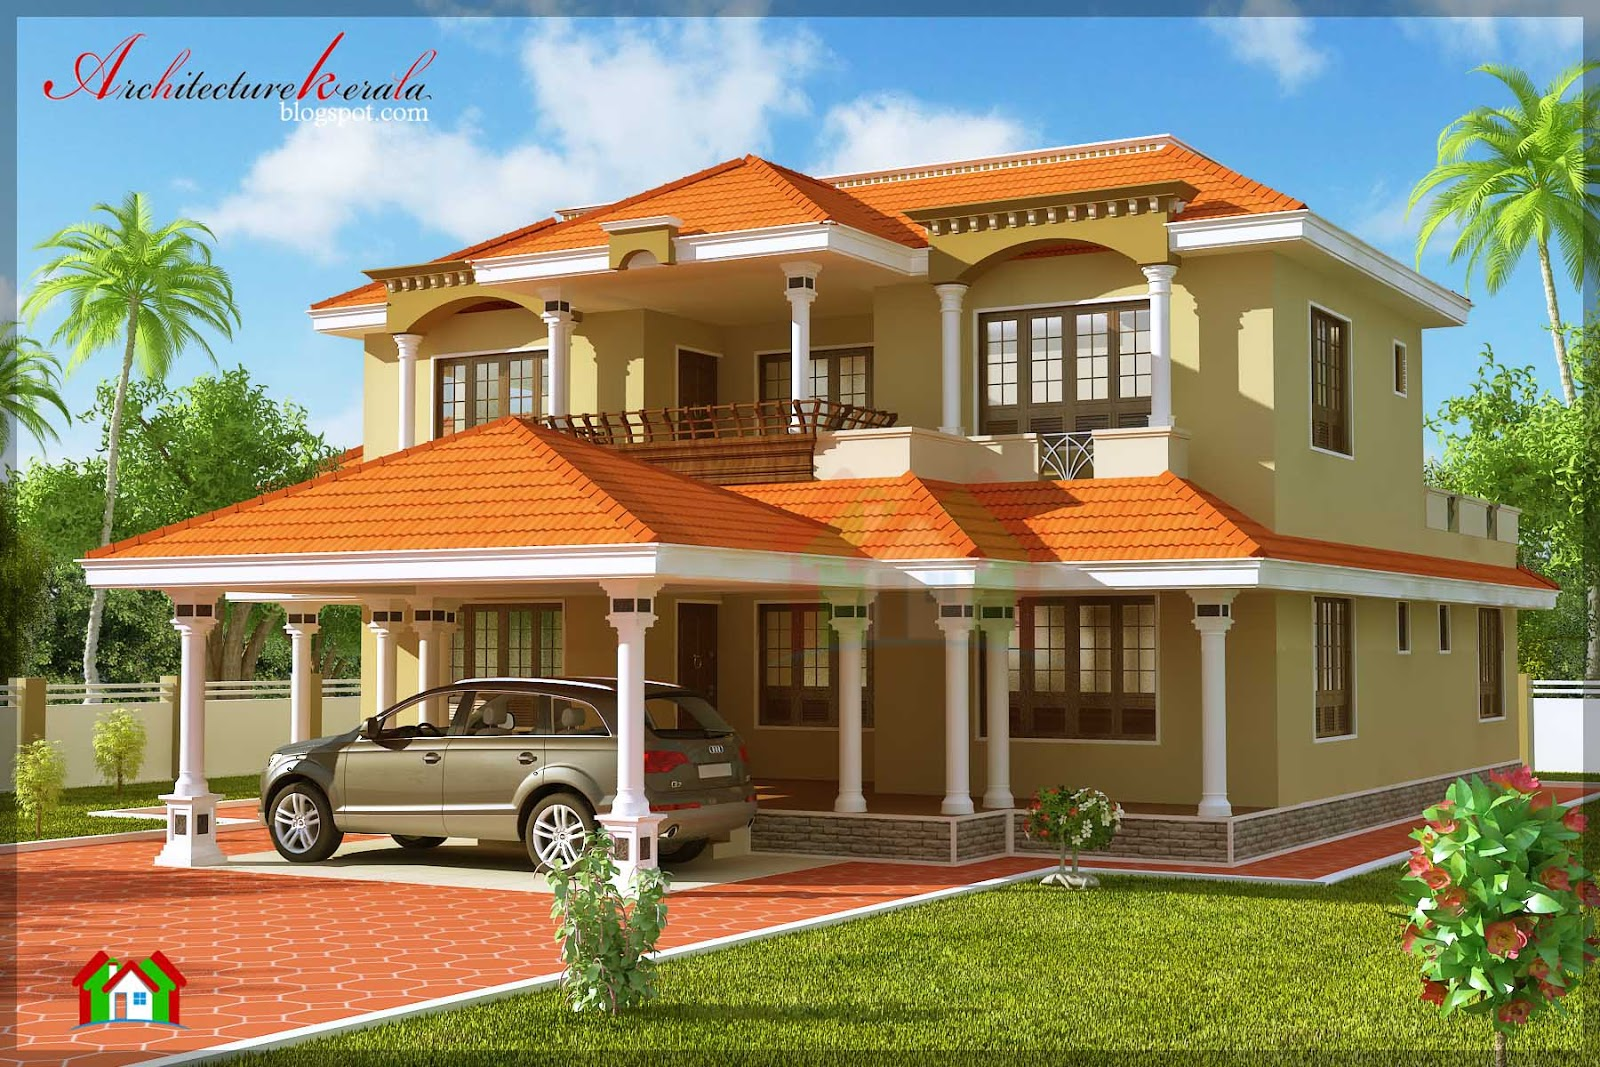 Traditional Home Designs Kerala Traditional House Plans Design Joy Studio Design